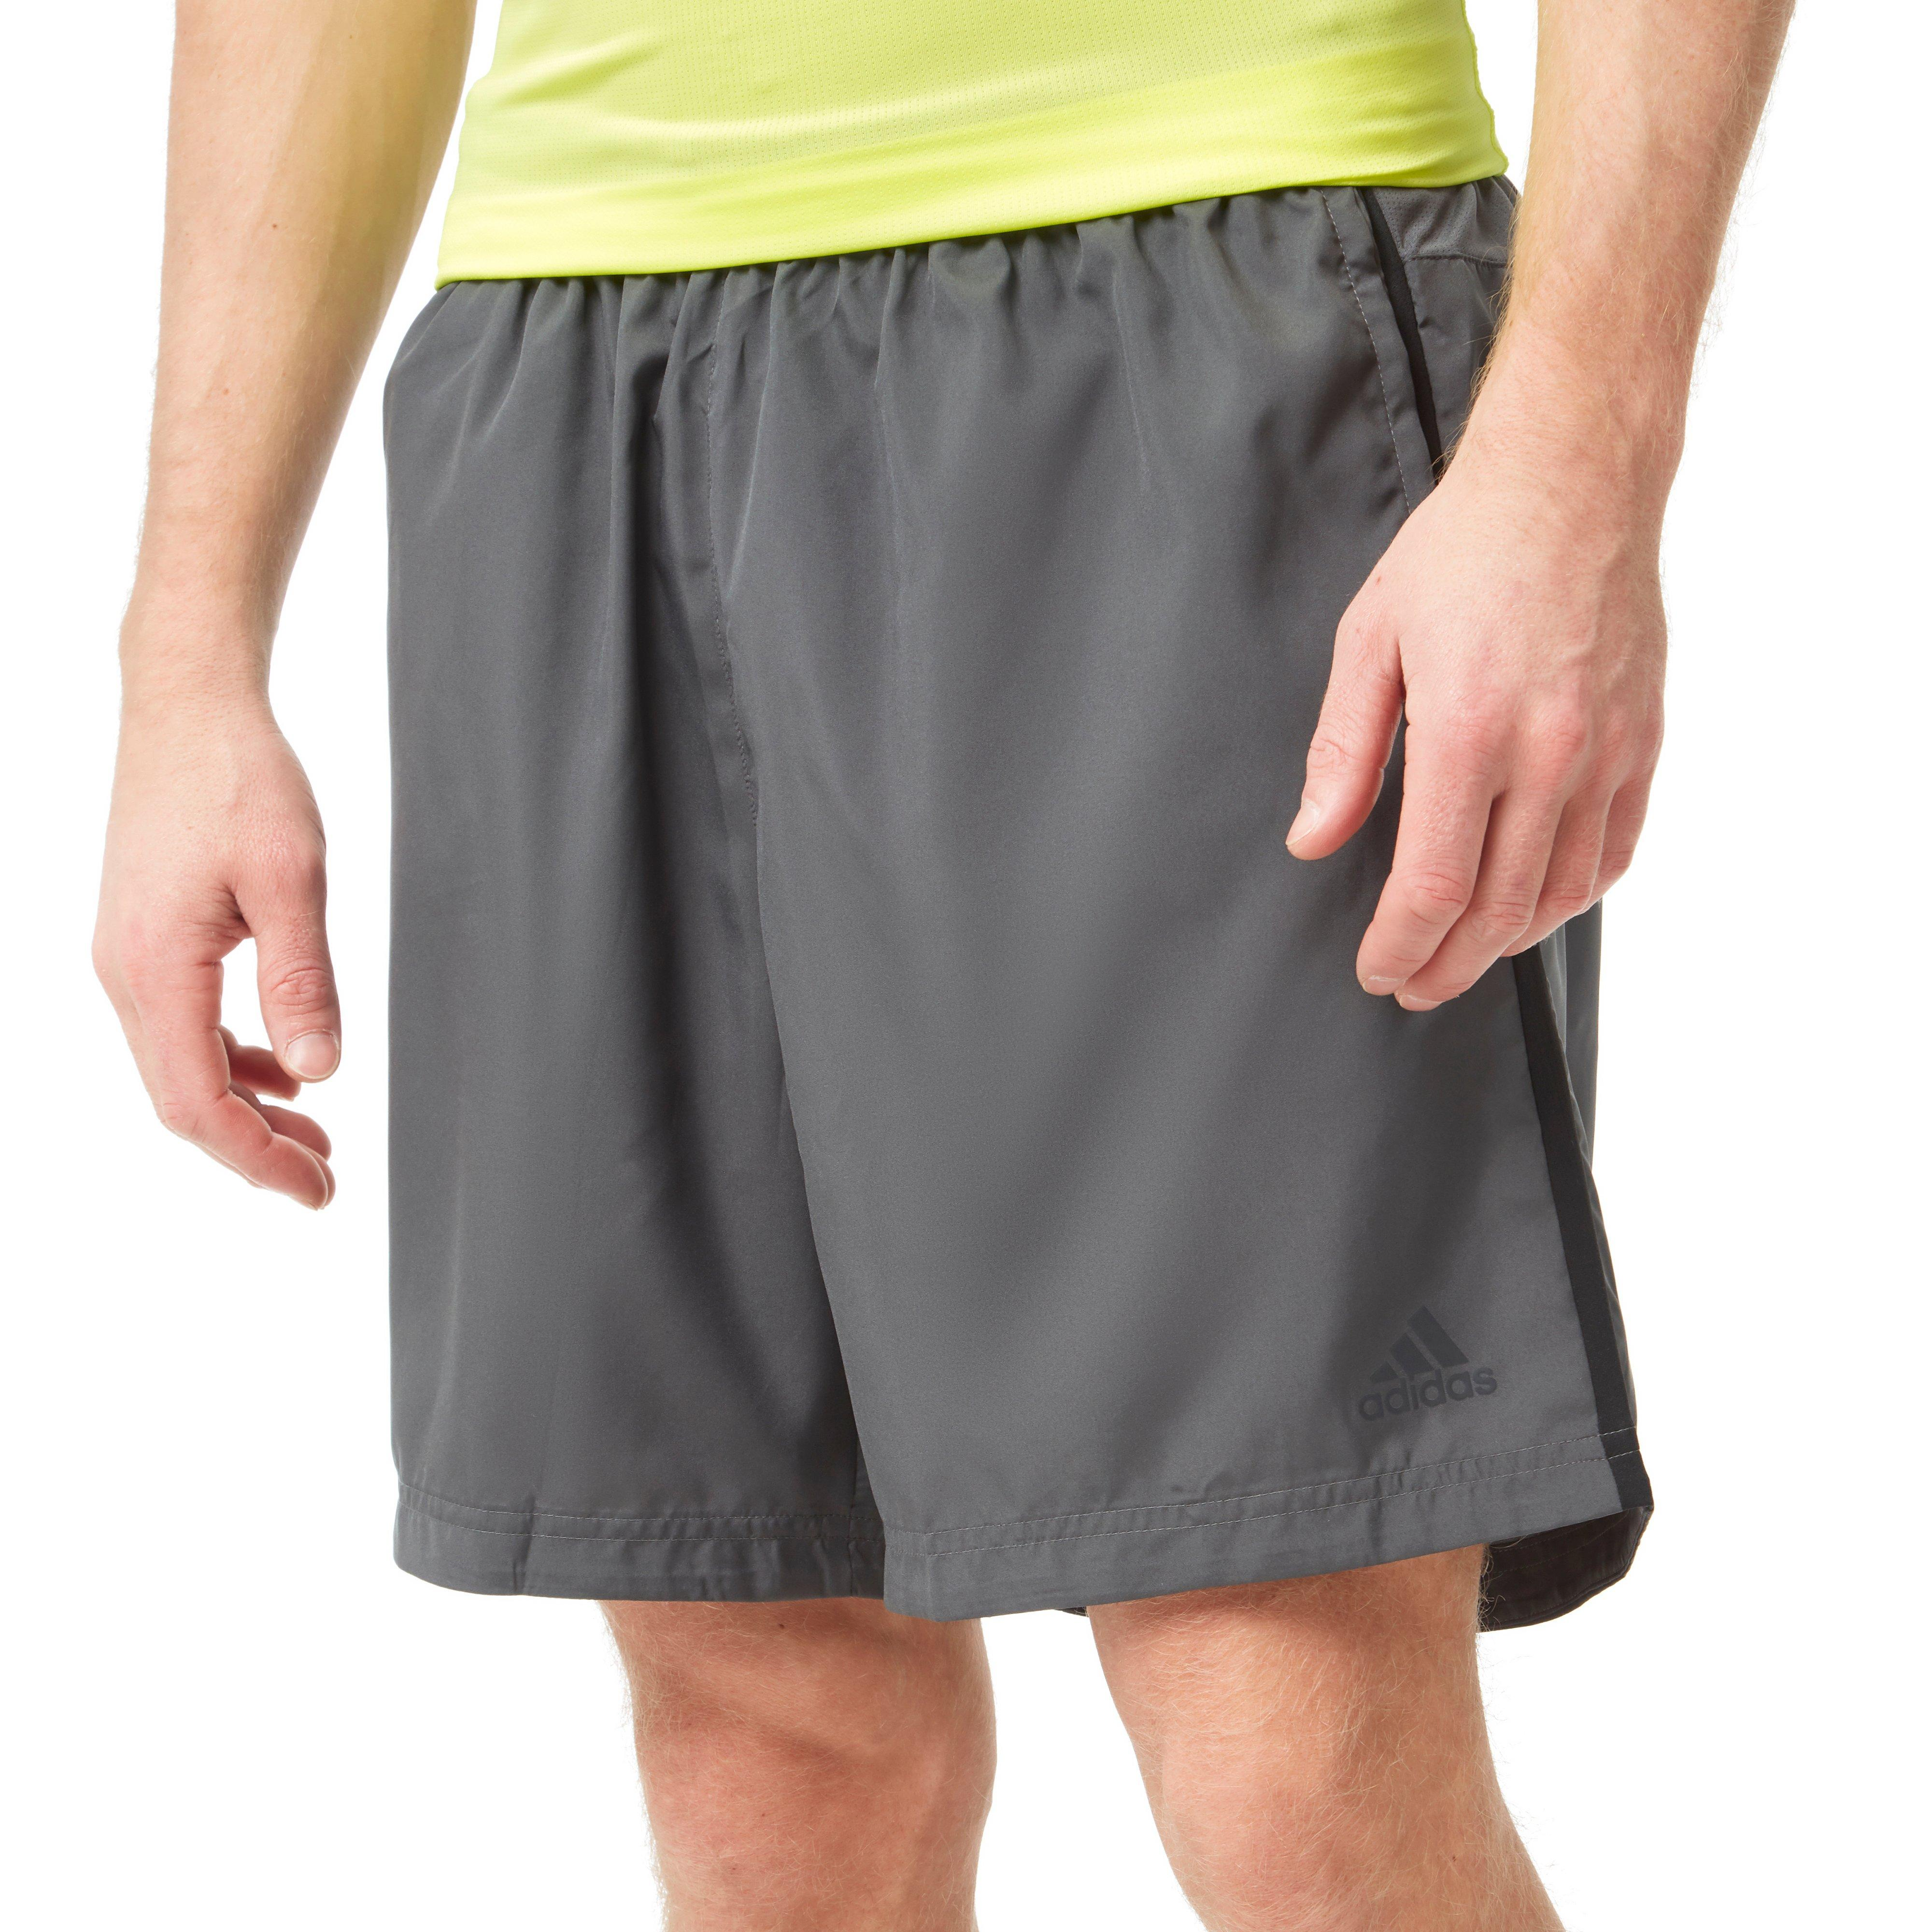 Details about adidas Own The Run 5 Inch Mens Running Shorts Black Breathable Run Shorts